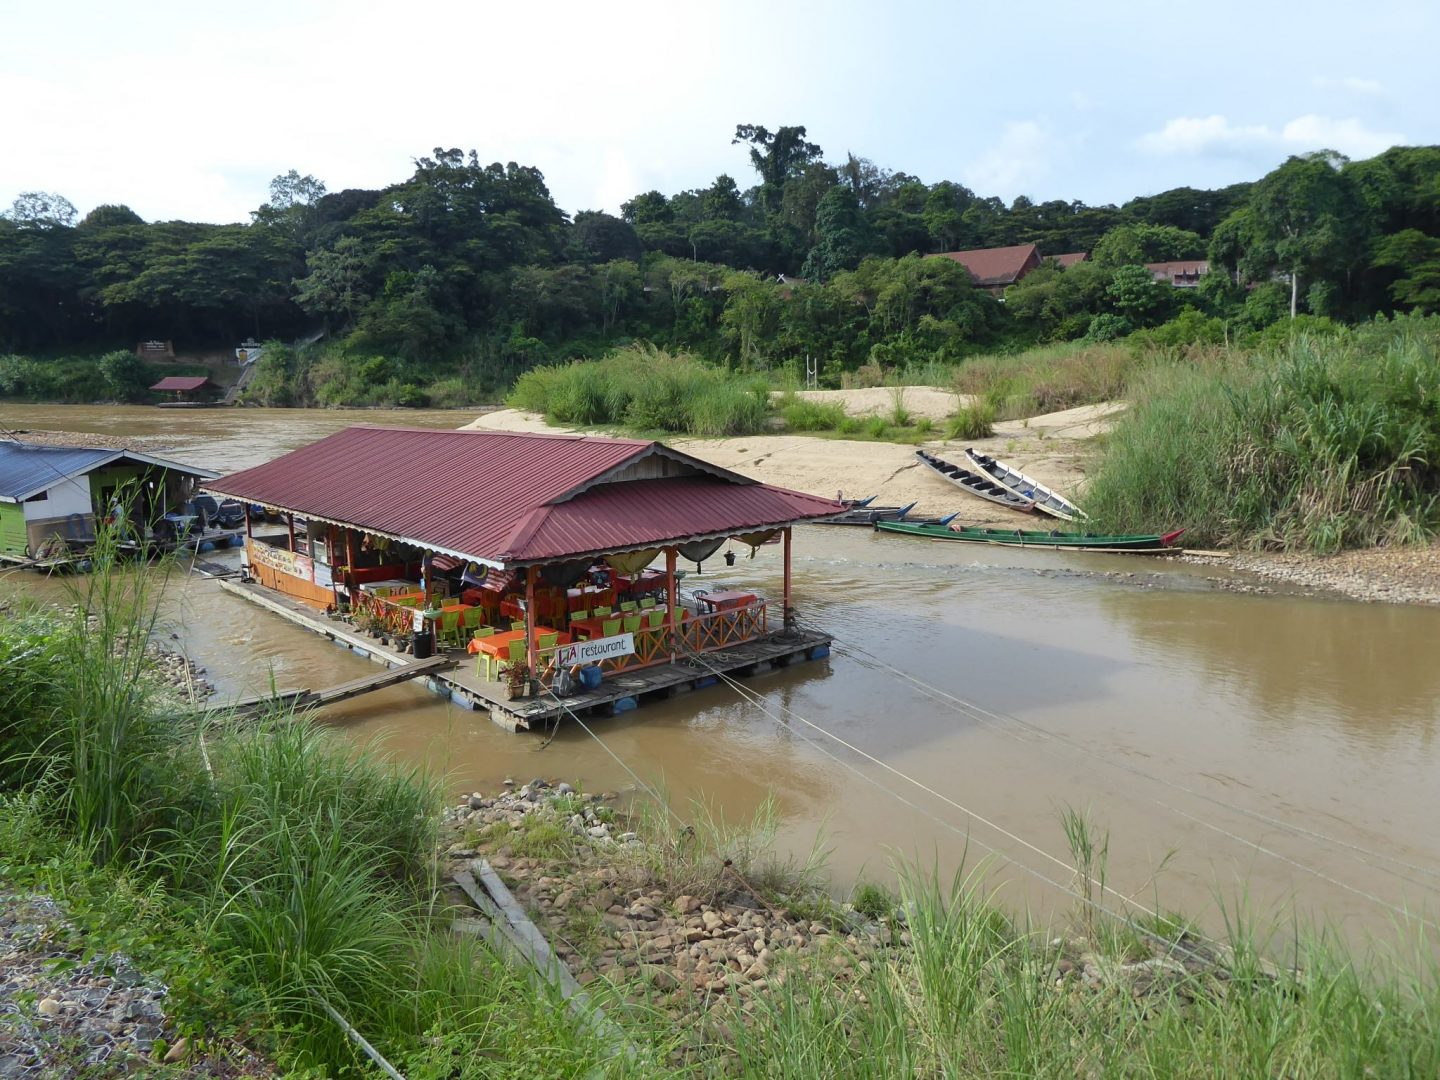 One of the floating restaurants in Kuala Tahan in Taman Negara. View of it on the river